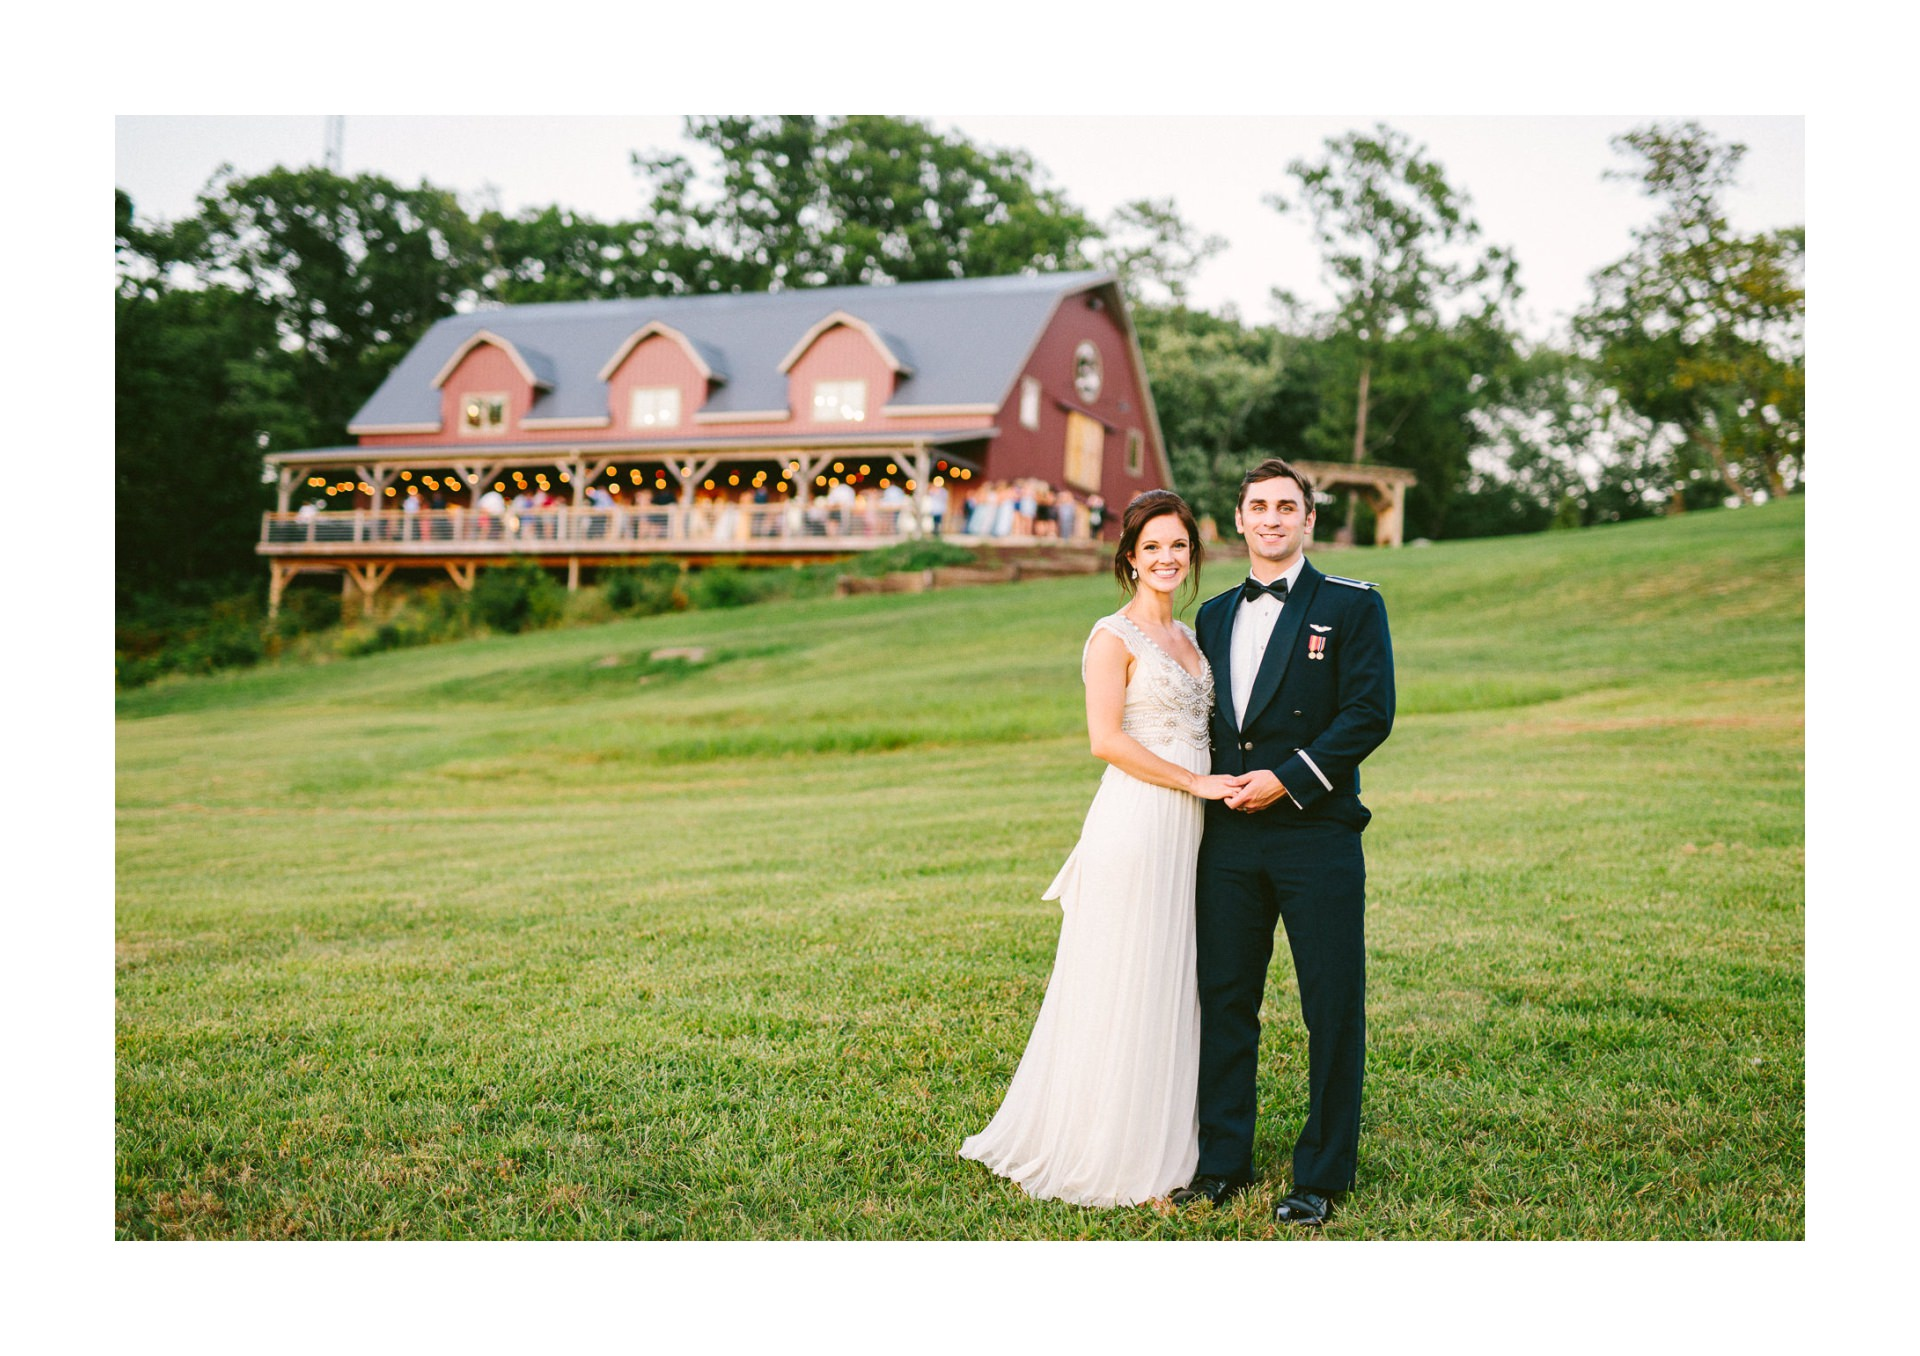 The Barn at Mapleside Farms Wedding Photos in Brunswick 2 27.jpg